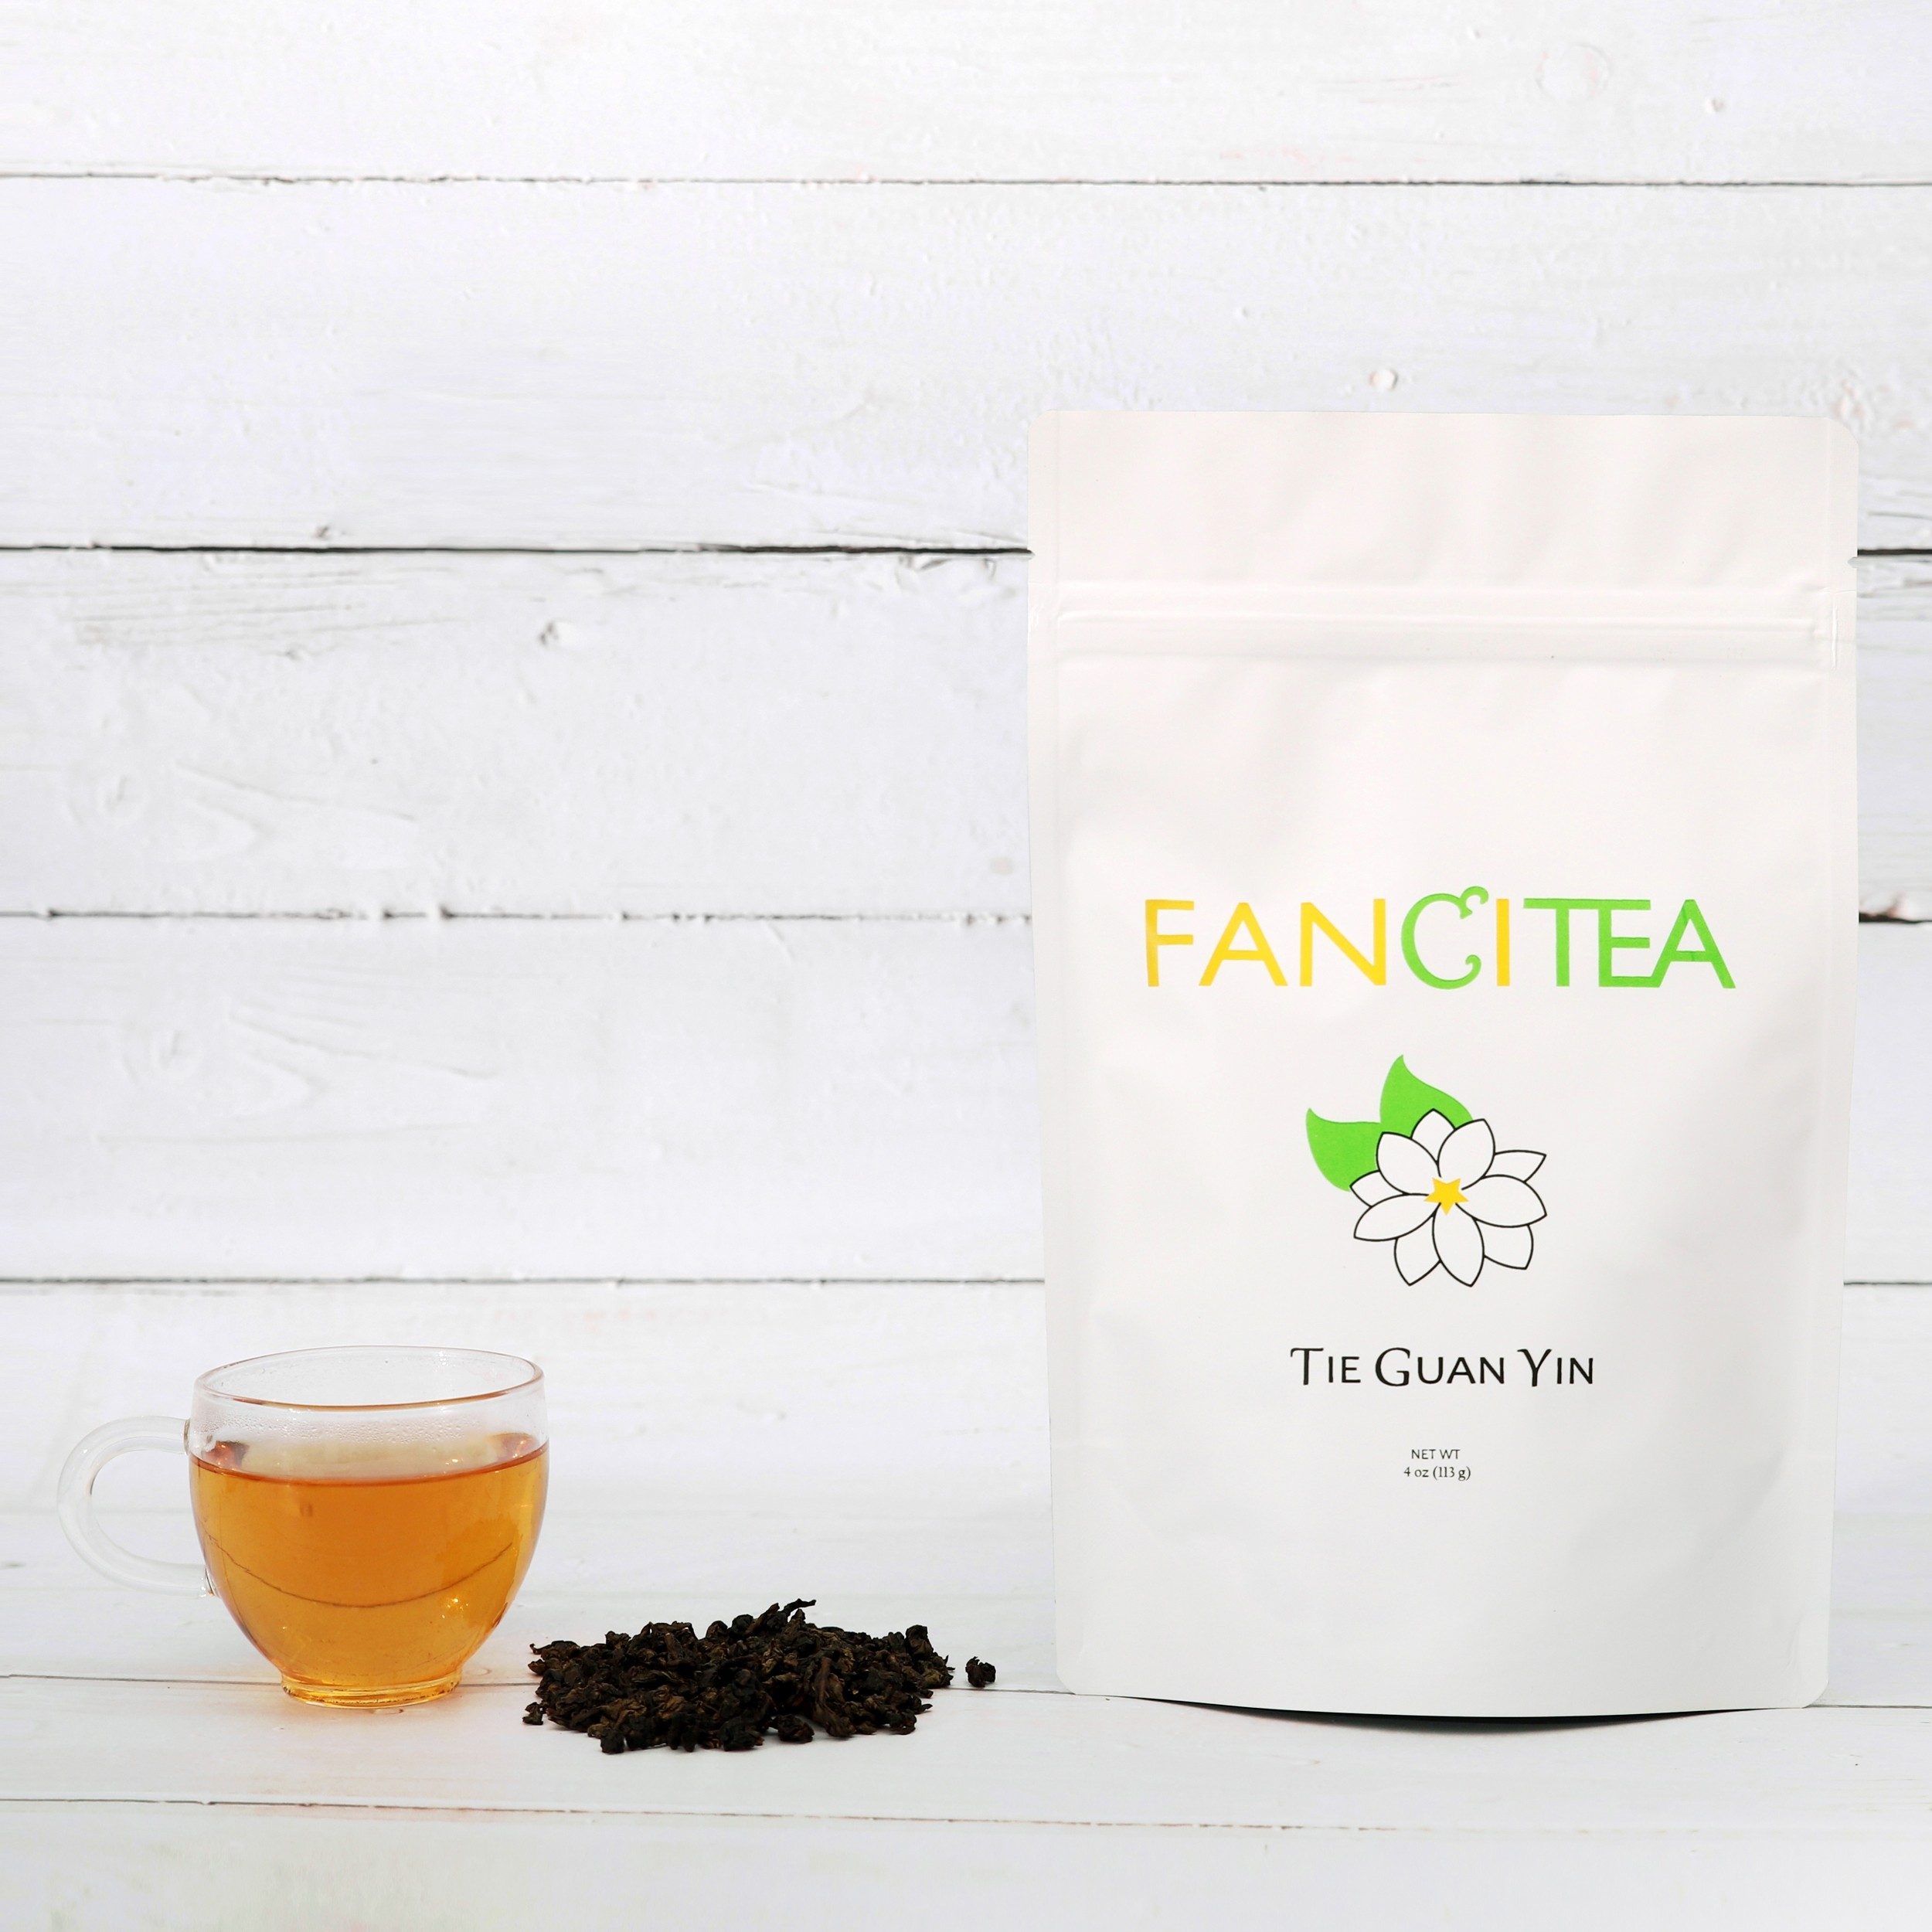 Fancitea Premium Tie Guan Yin Chinese Oolong Loose Tea Leaves 4oz/45 servings